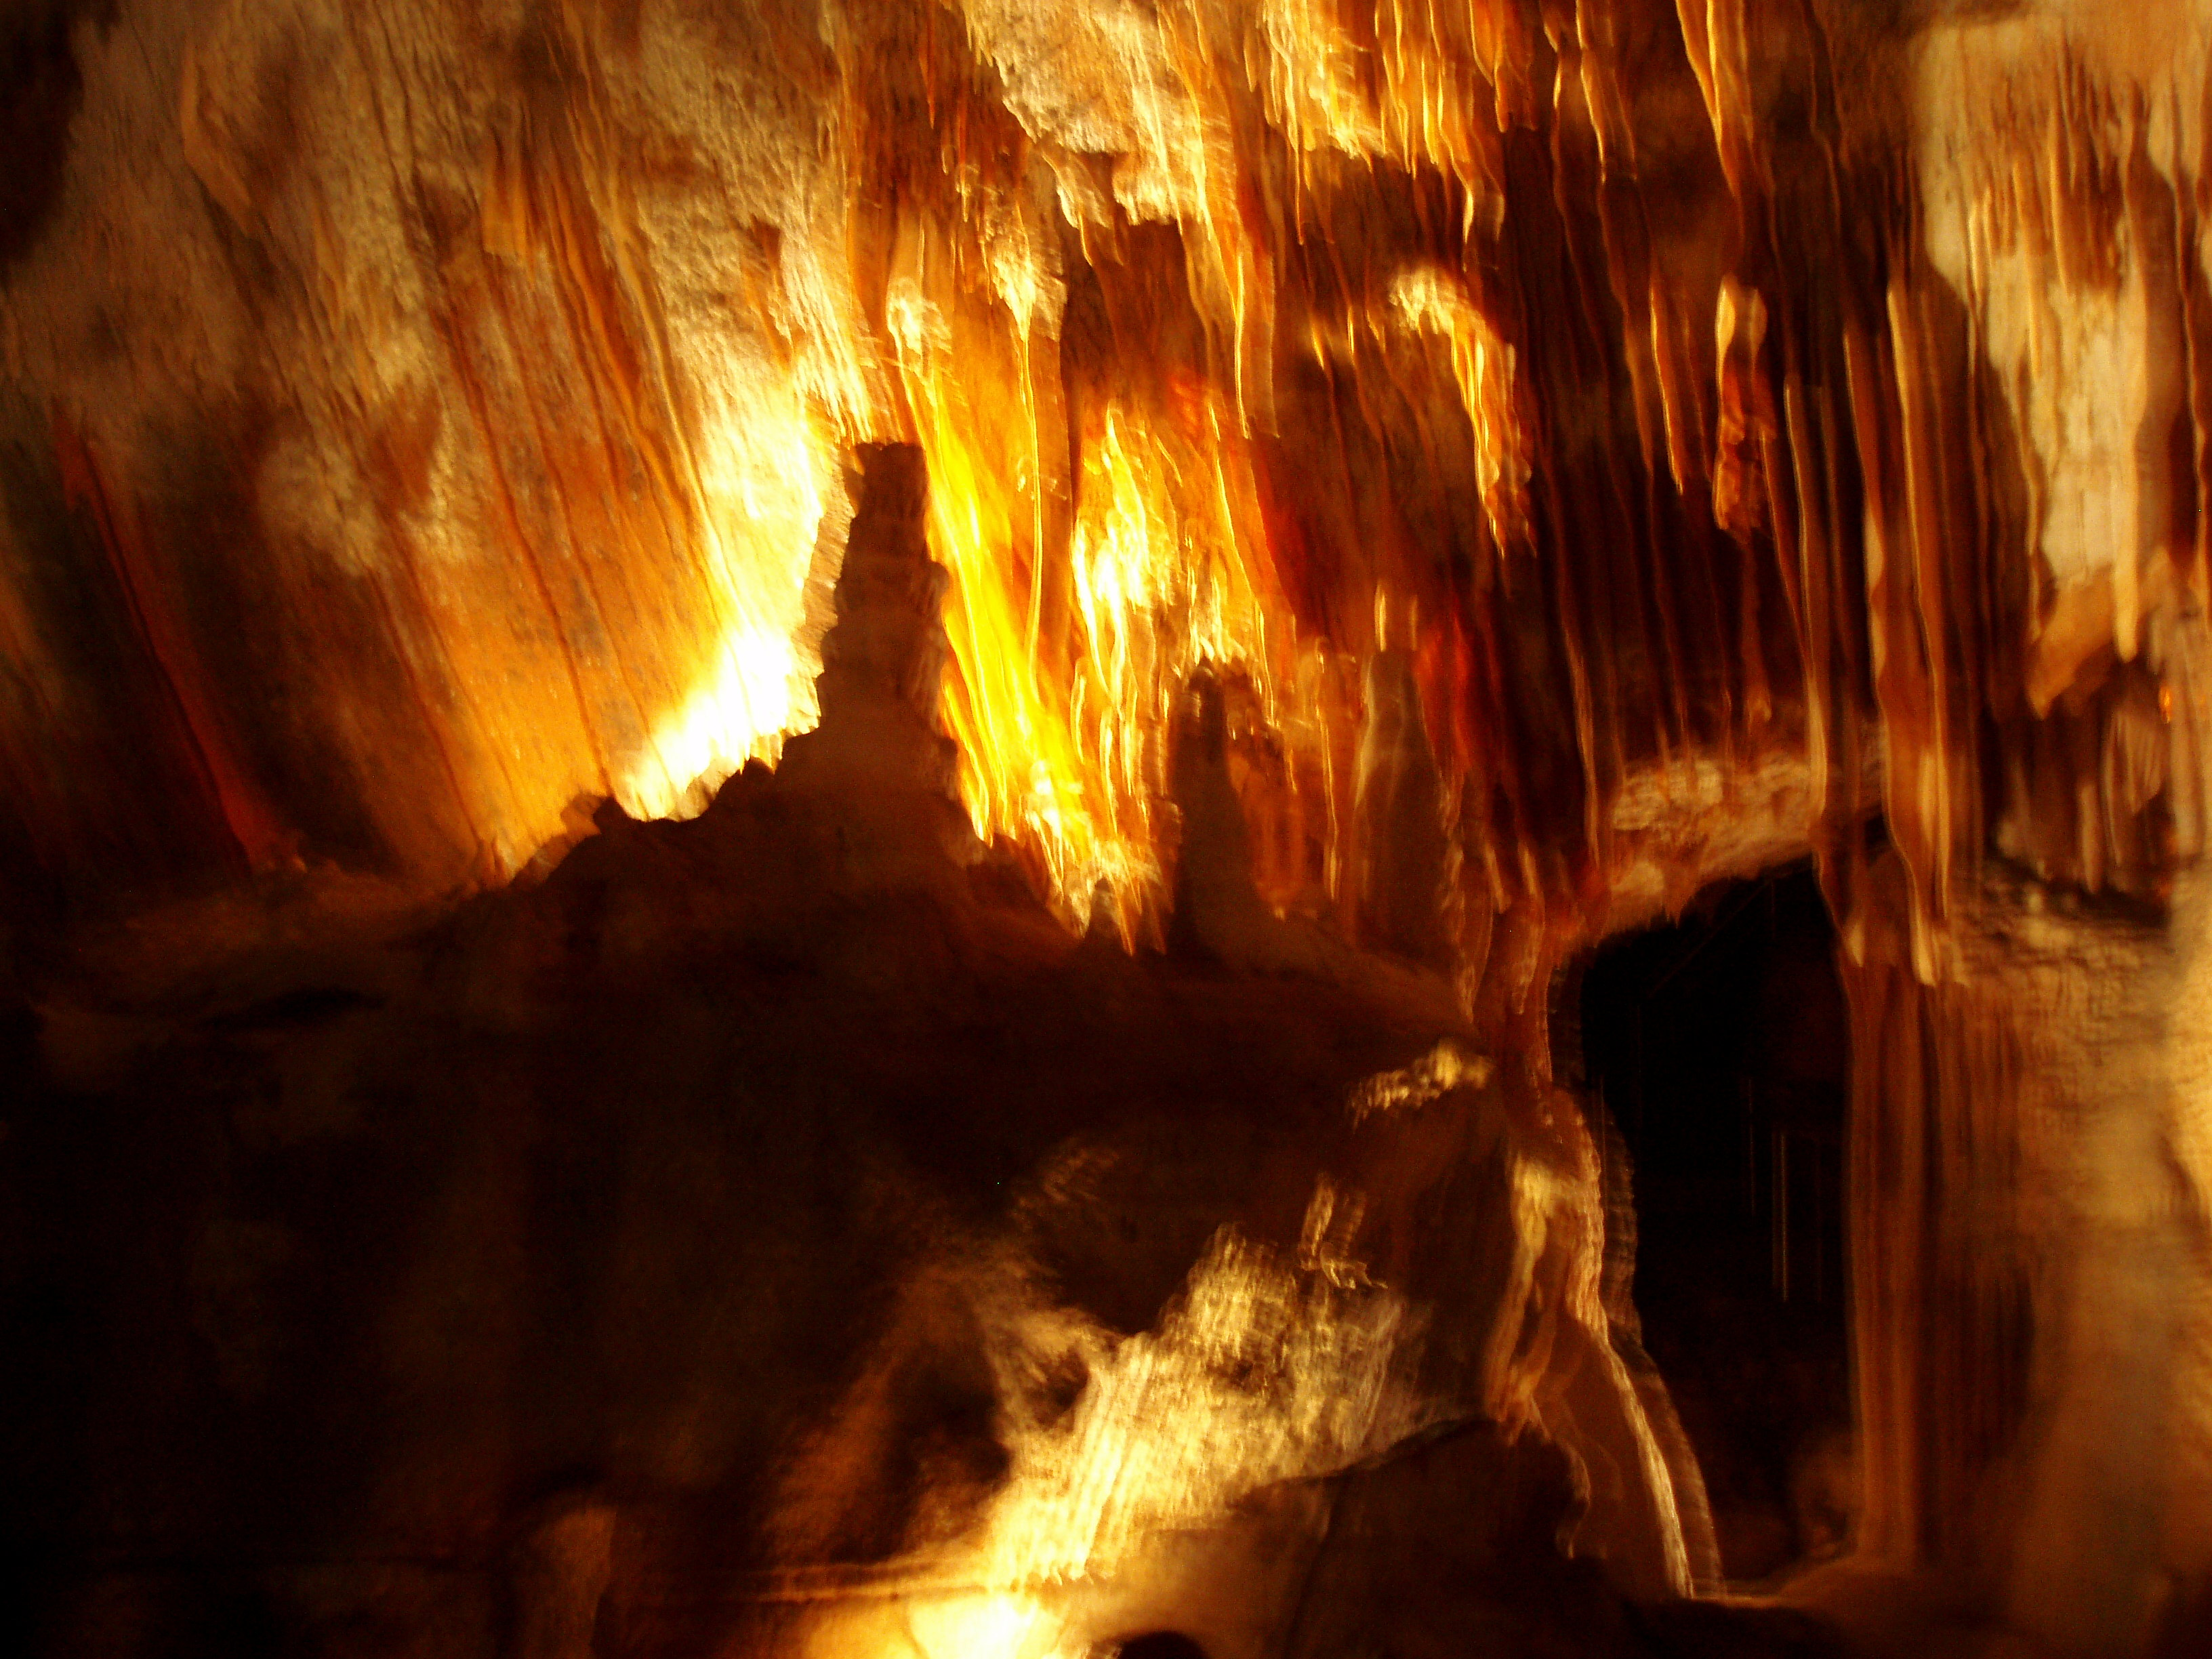 blurred photo of the inside of some caves